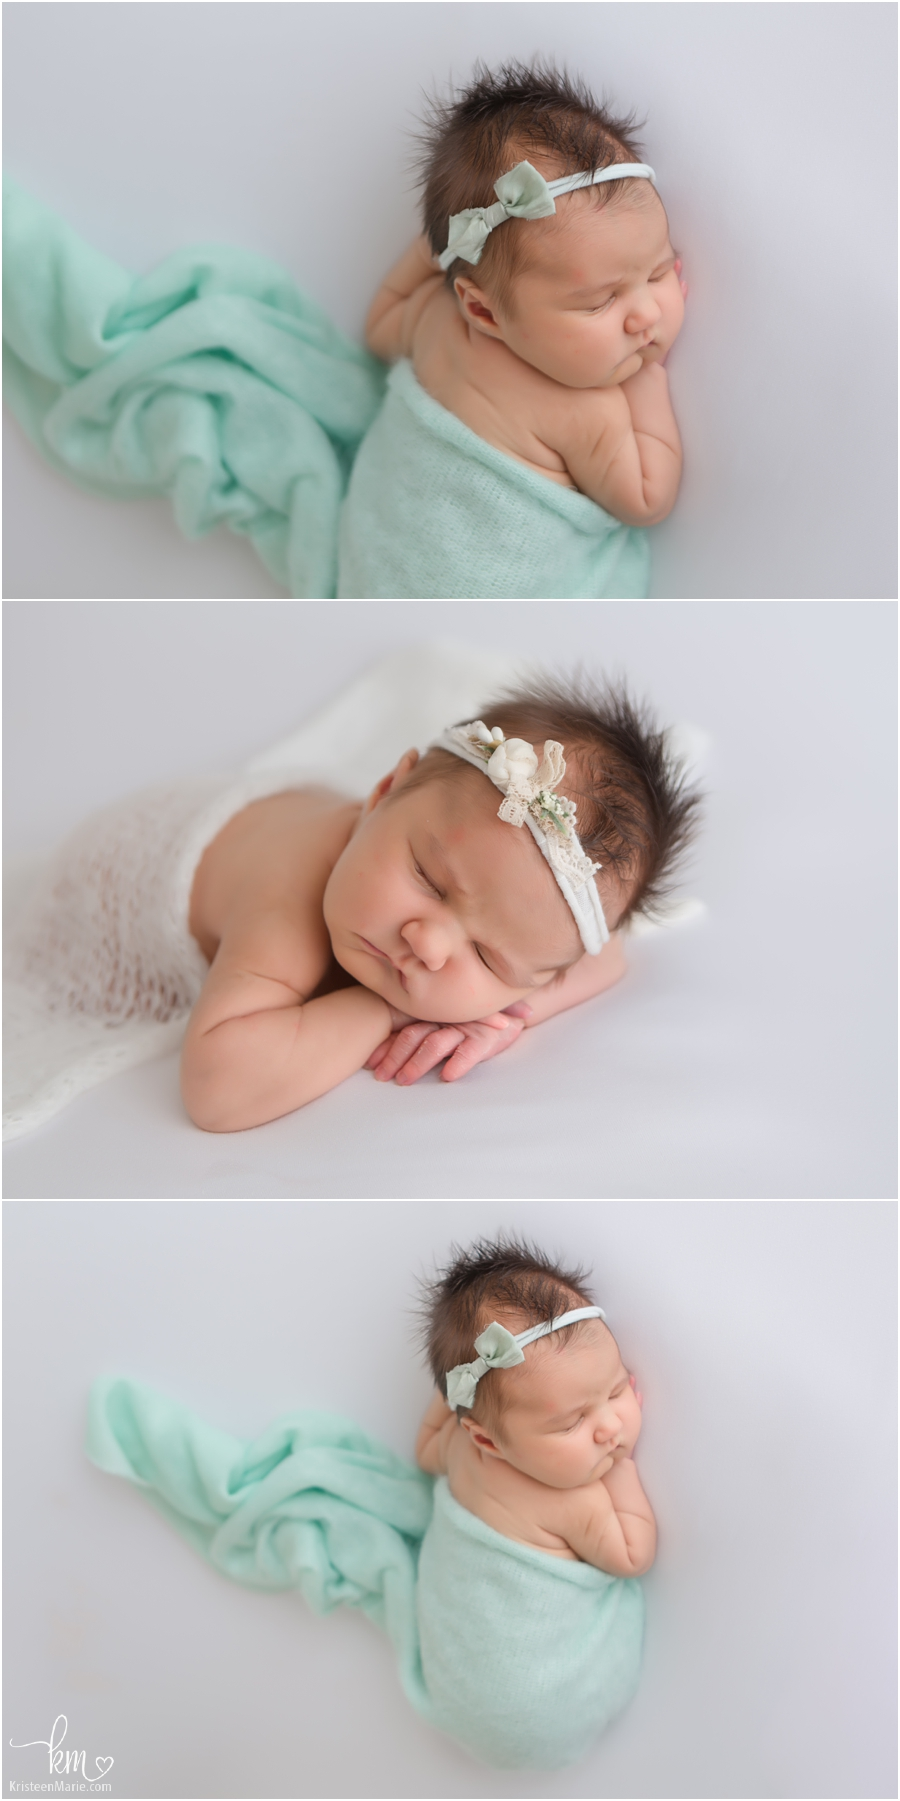 teal and white newborn pictures with baby girl